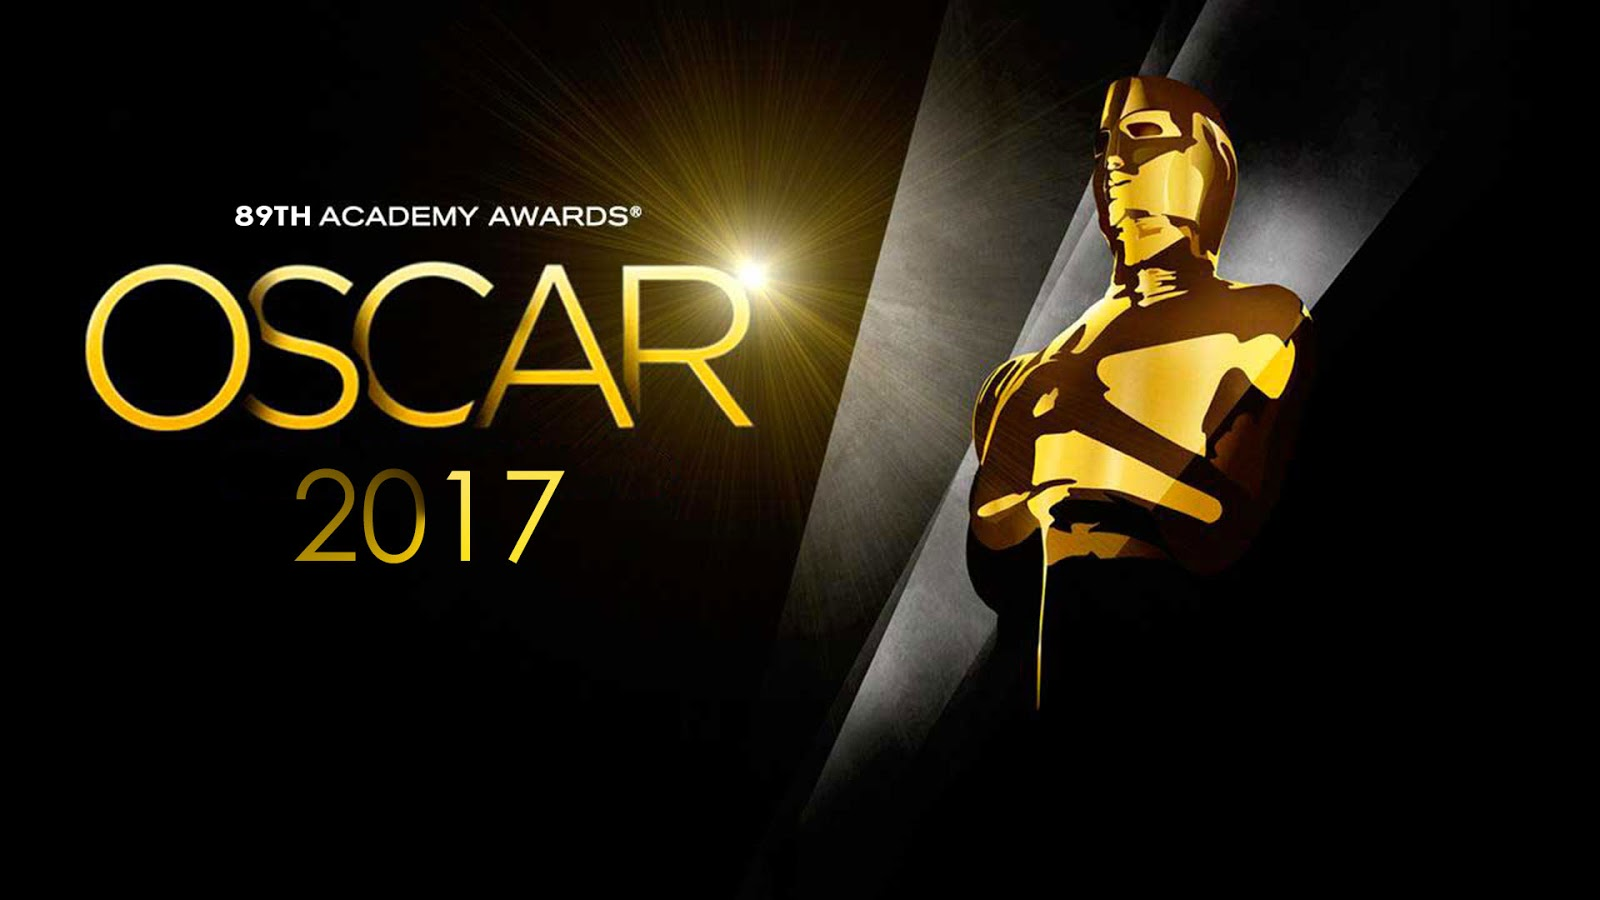 Oscars 2017: Nominees and Predictions